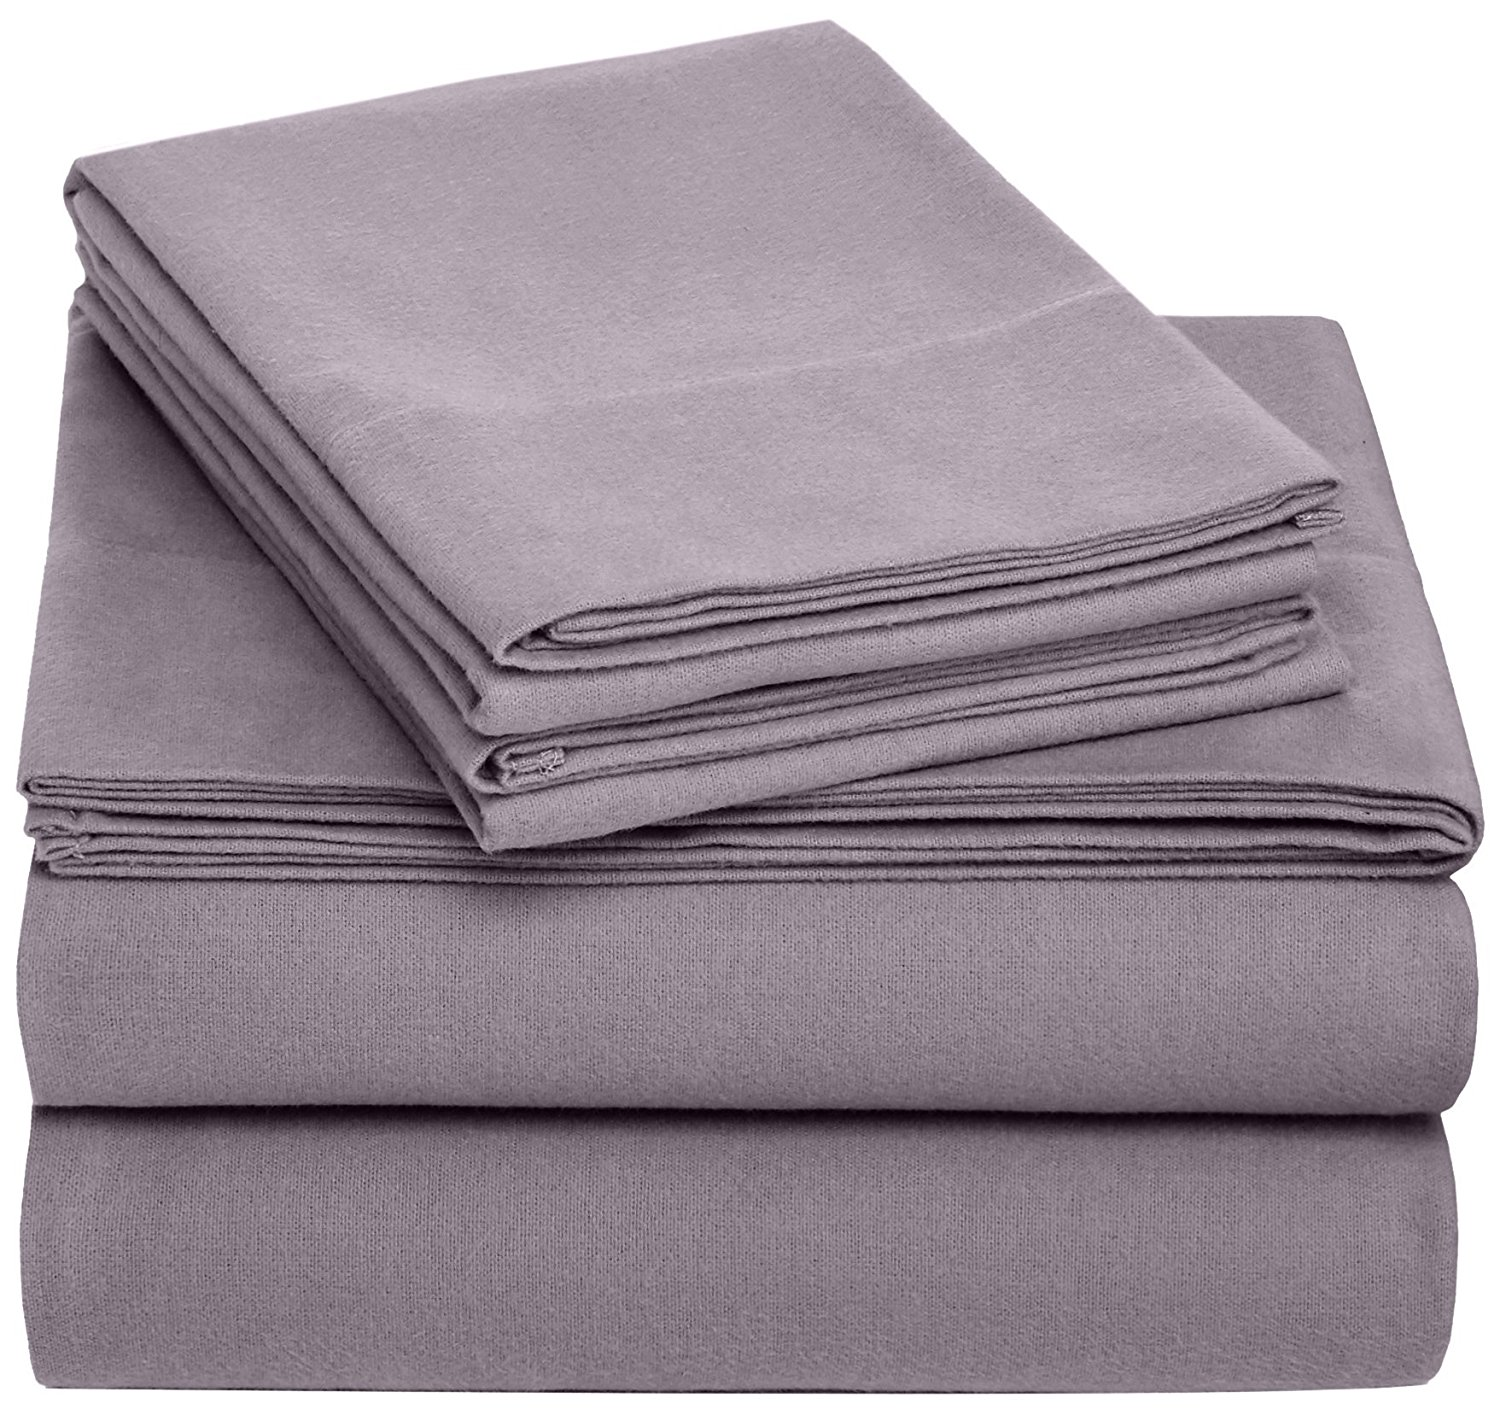 8.25 x 9.5 Sheet 1//32 Thick Flexible Graphite with No Insert